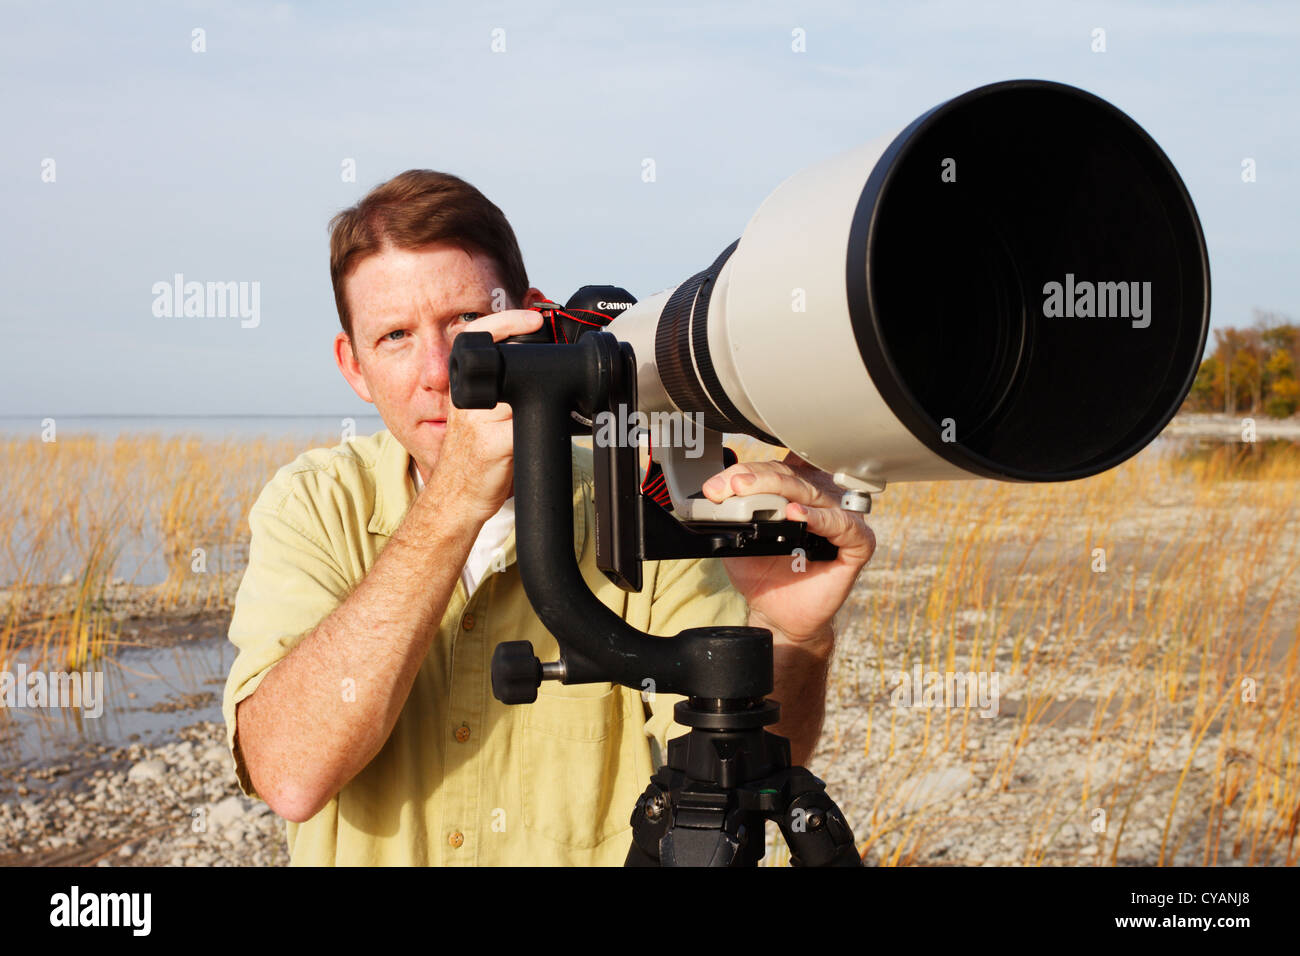 Professional photographer with a super telephoto lens mounted on a gimbal head and tripod. - Stock Image